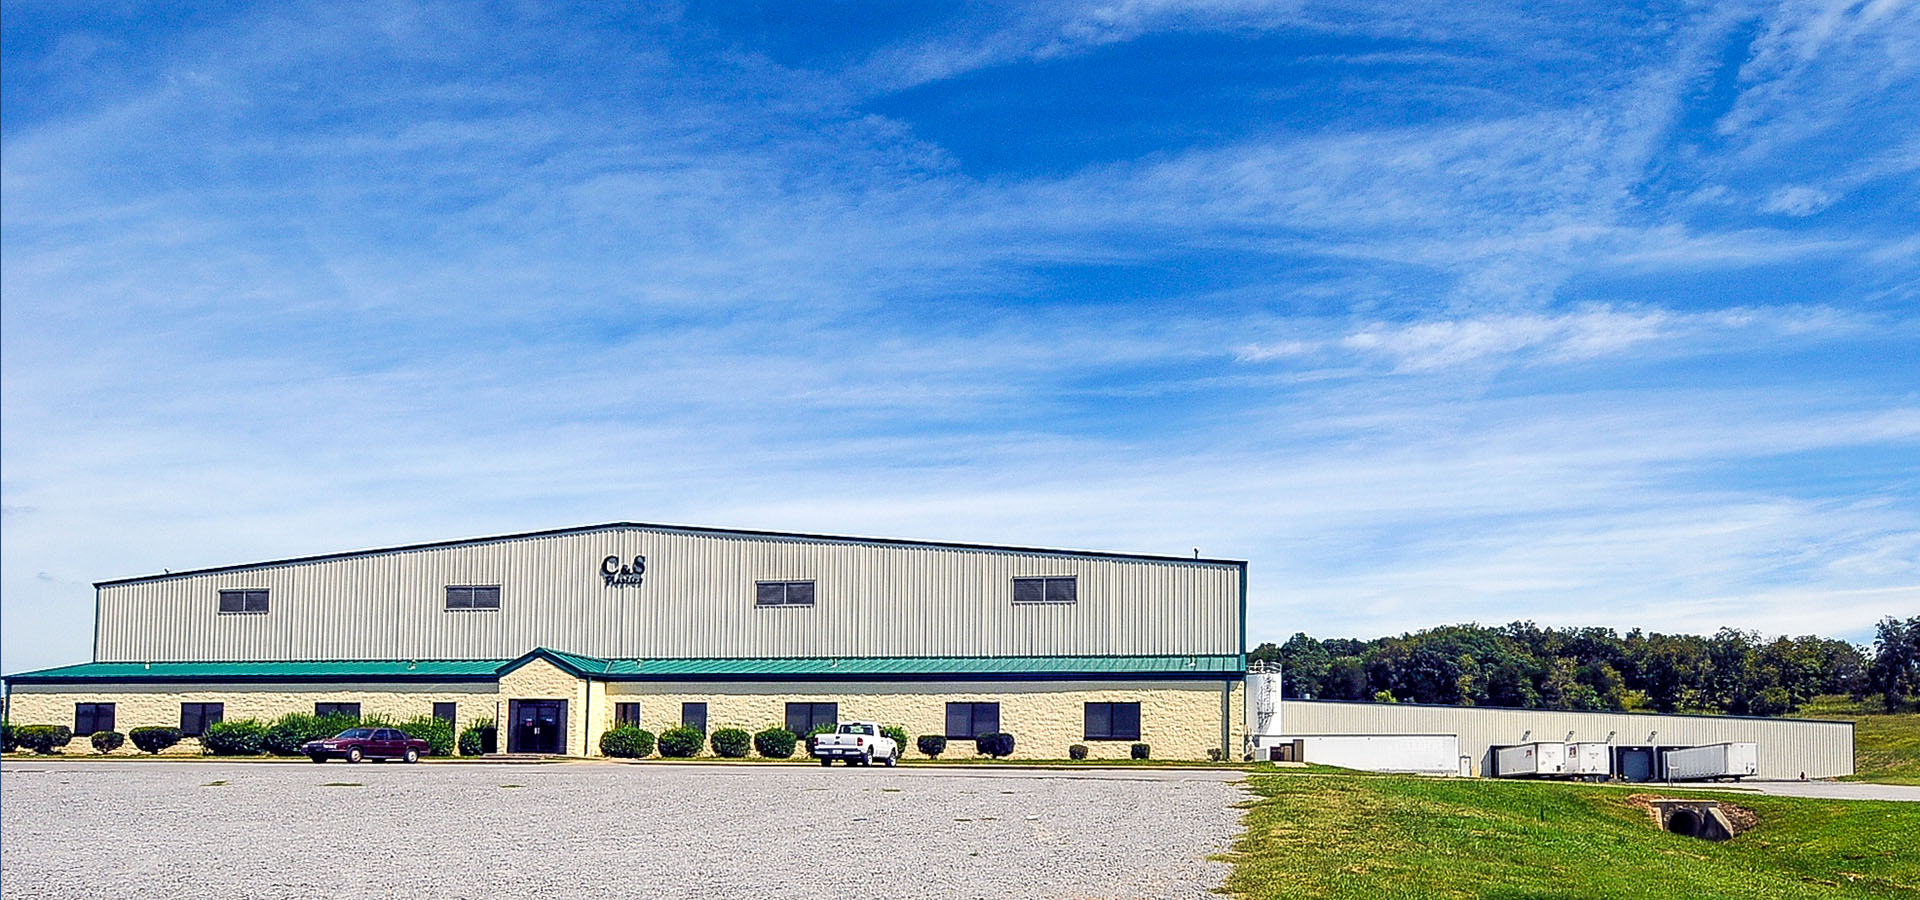 C&S Plastics | Fayetteville, Tennessee | Brindley Construction, LLC.